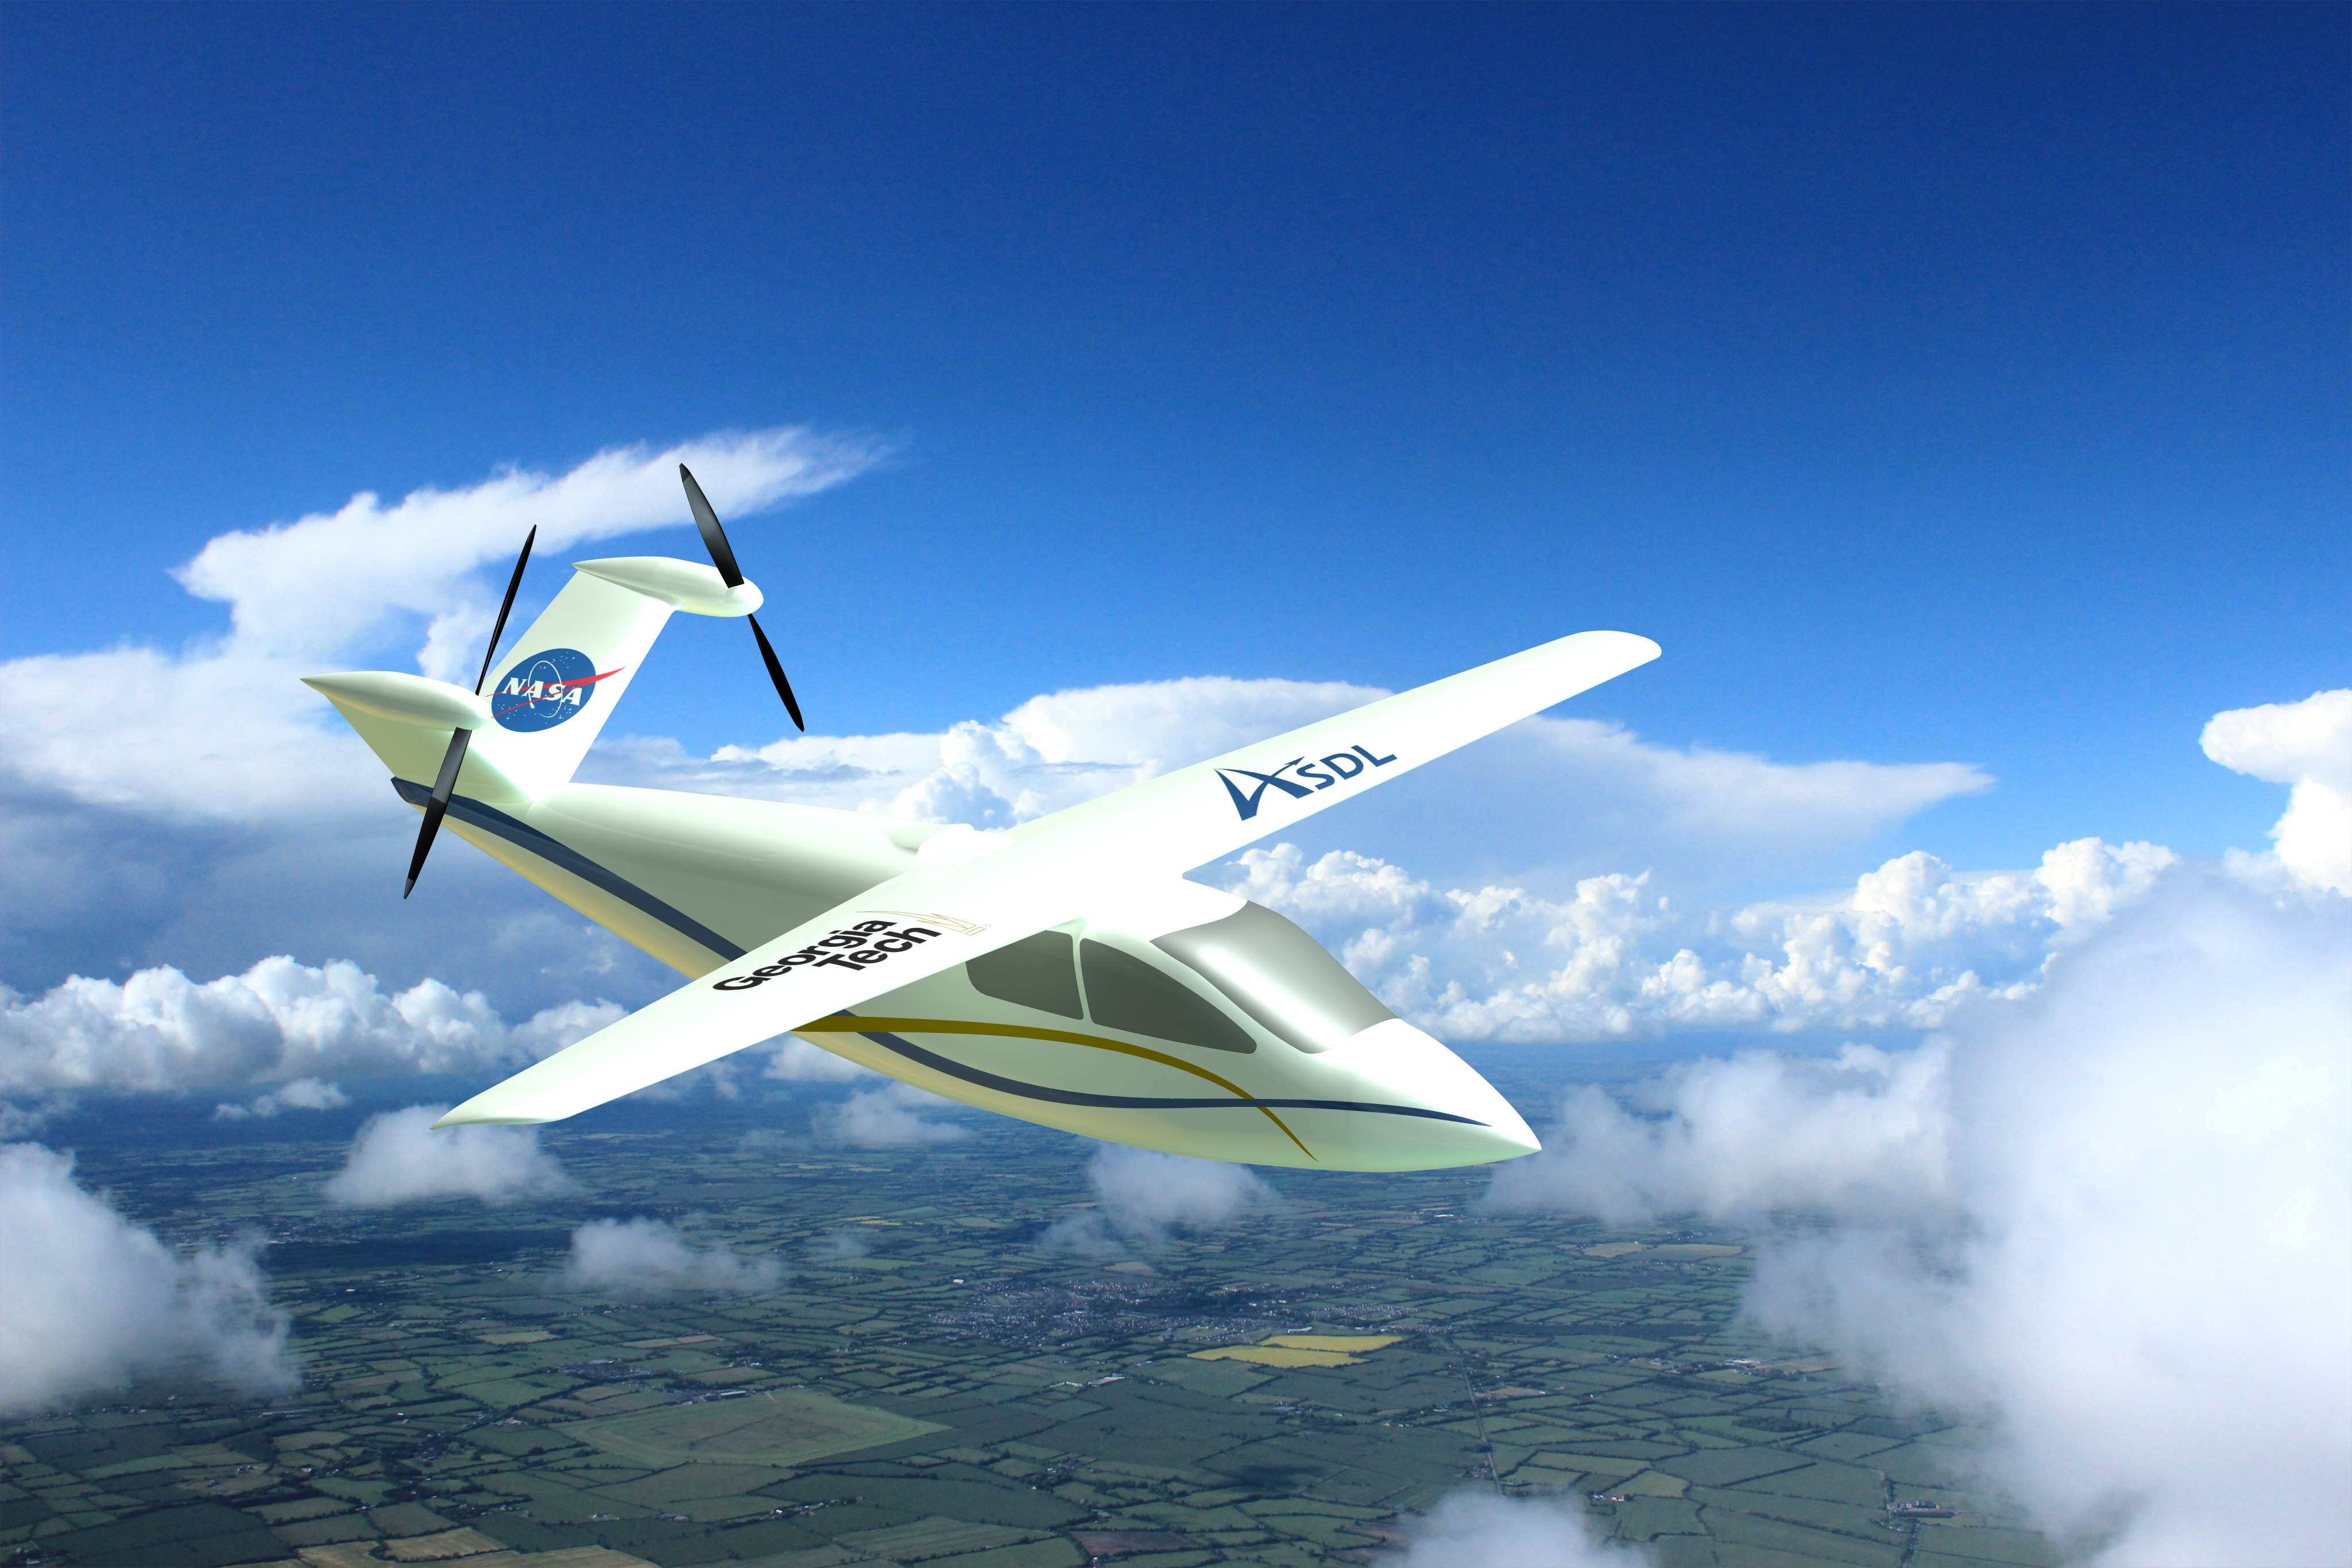 With the recent advances in technology and design aircraft concepts - Artist Concept Of The Vapor Future Aircraft Design